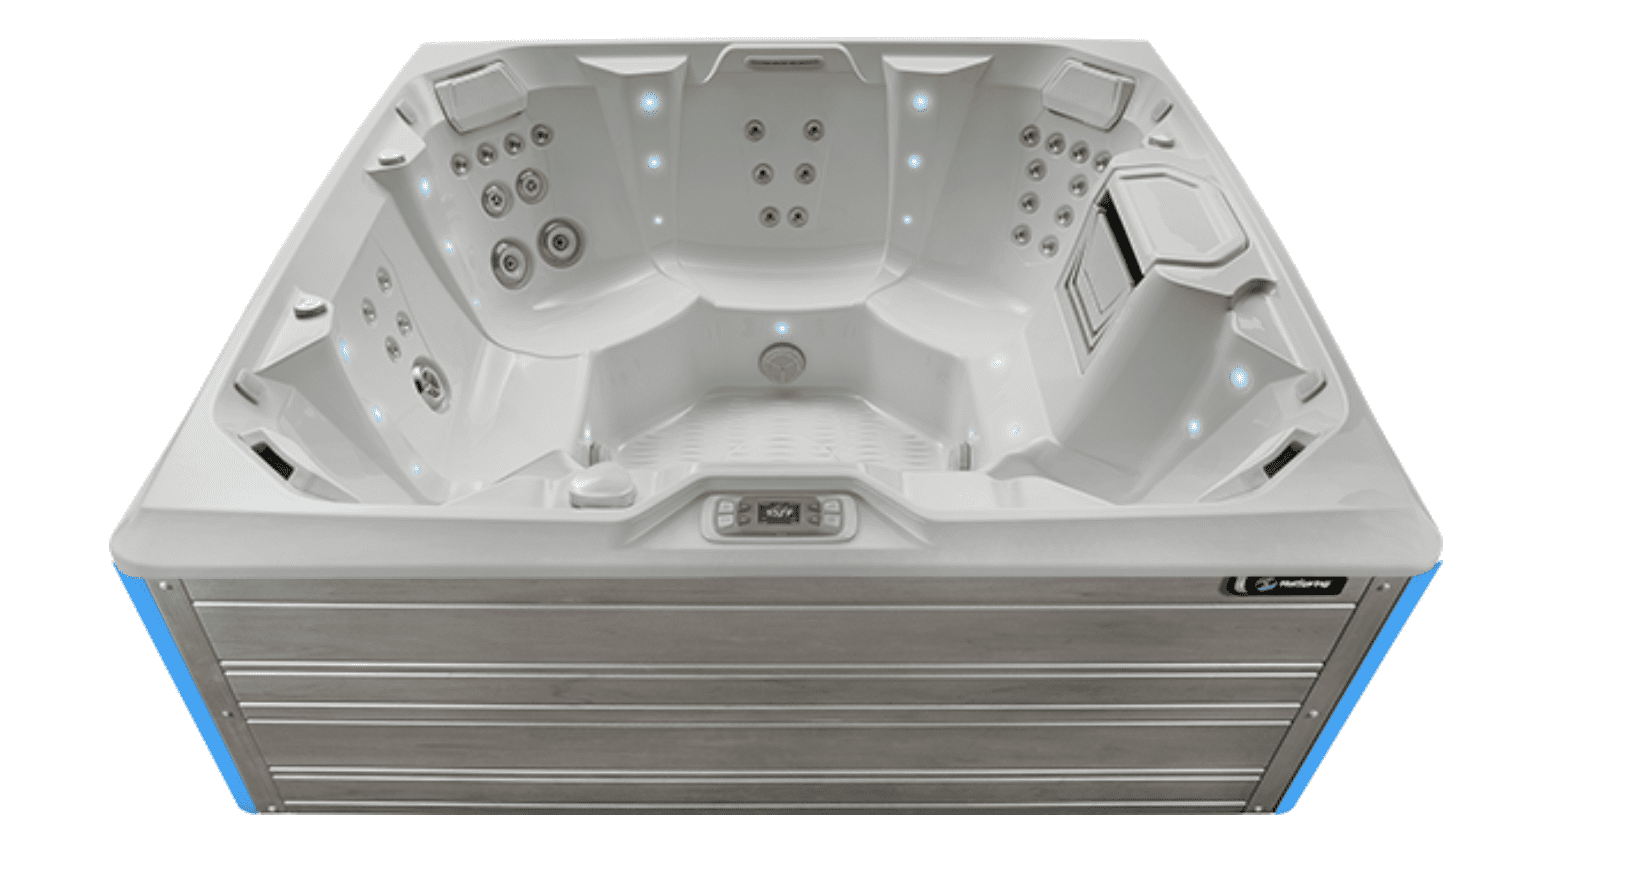 Pulse Limelight Hot Spring Seats 7   The Spa And Sauna Company | Hot Tubs,  Swim Spas, Saunas Dealer Reno, Portable Spas, Lap Pools